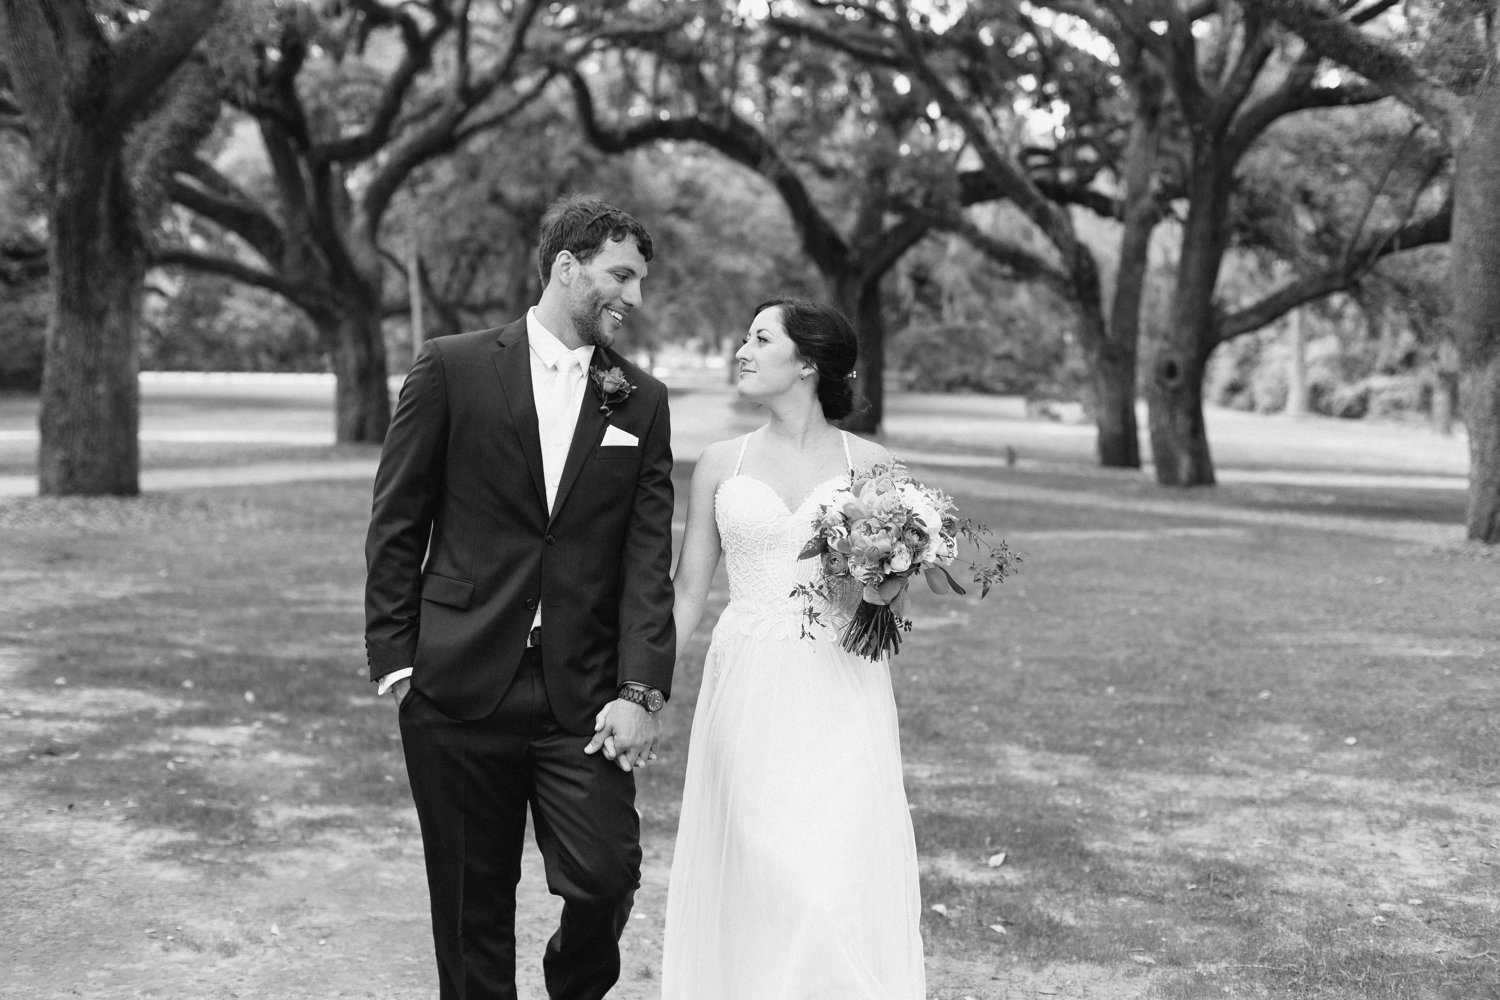 Lindsey_A_Miller_Photography_mcleod_plantation_wedding_charleston_south_carolina_clear_tent_spring_mod_events_032.jpg